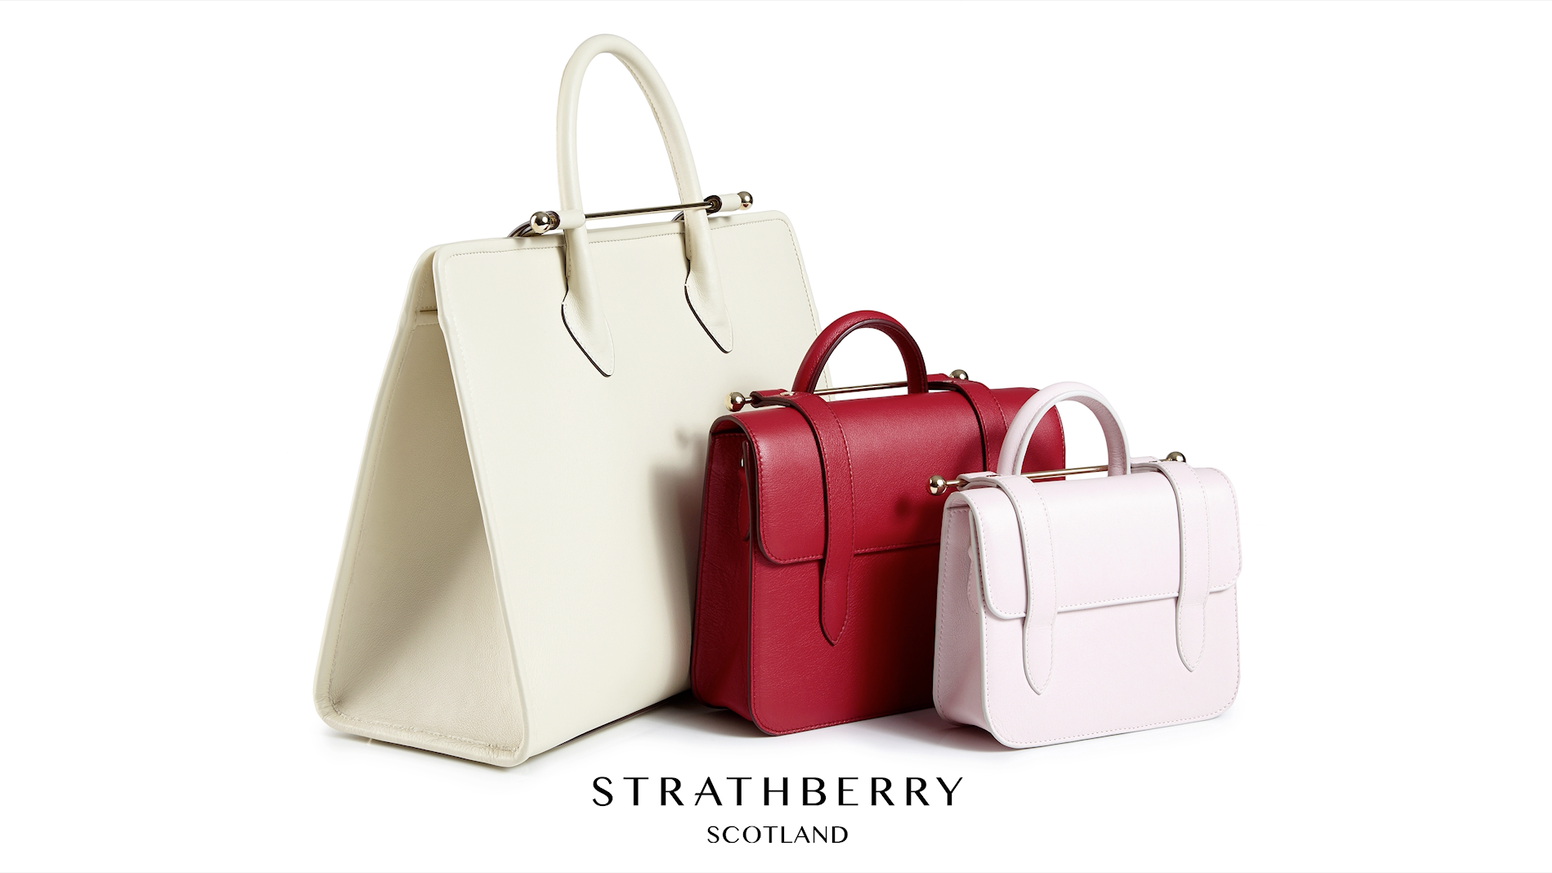 We Re A Luxury Brand Design House From Scotland Produce Collection Of Beautifully Made Bags Purses And Accessories